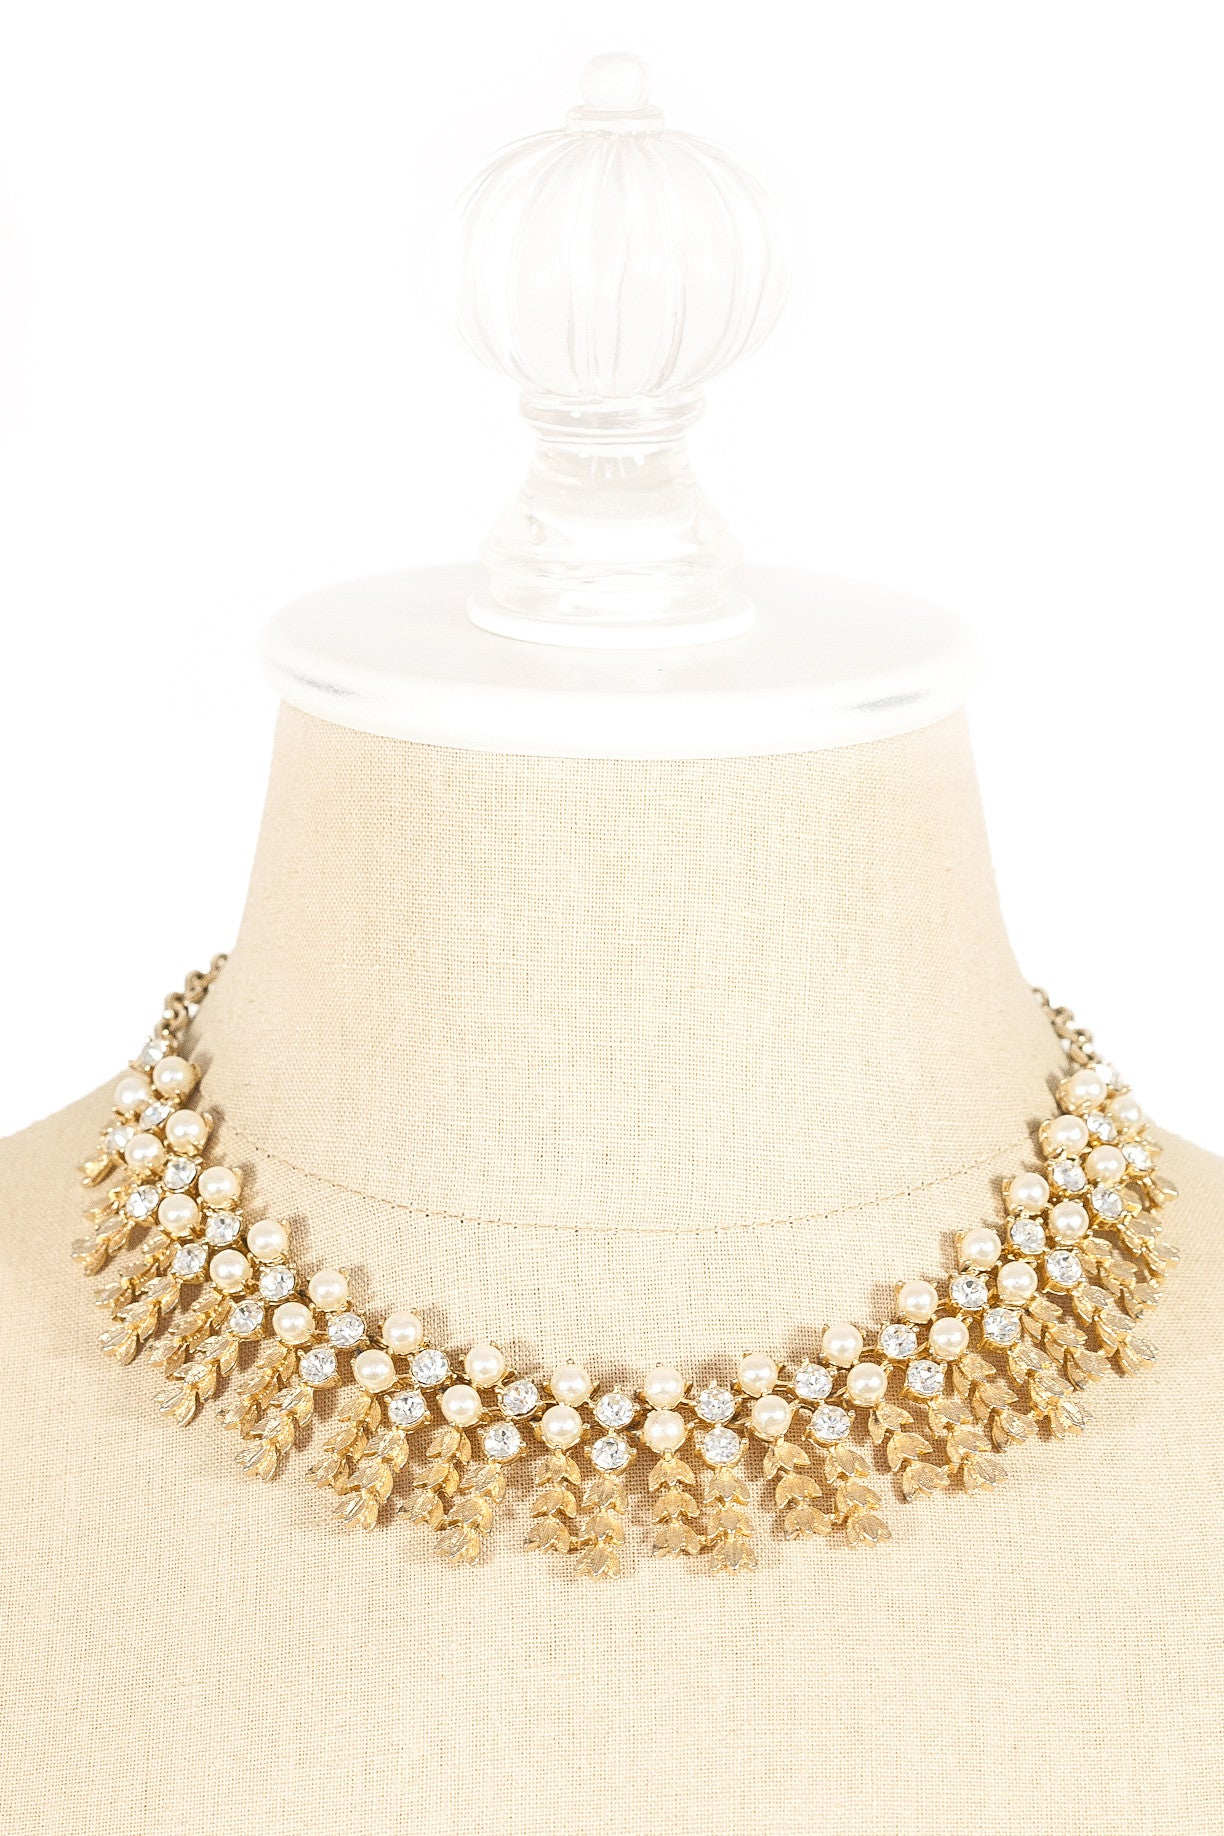 70's__Sarah Coventry__Rhinestone & Pearl Fringe Necklace